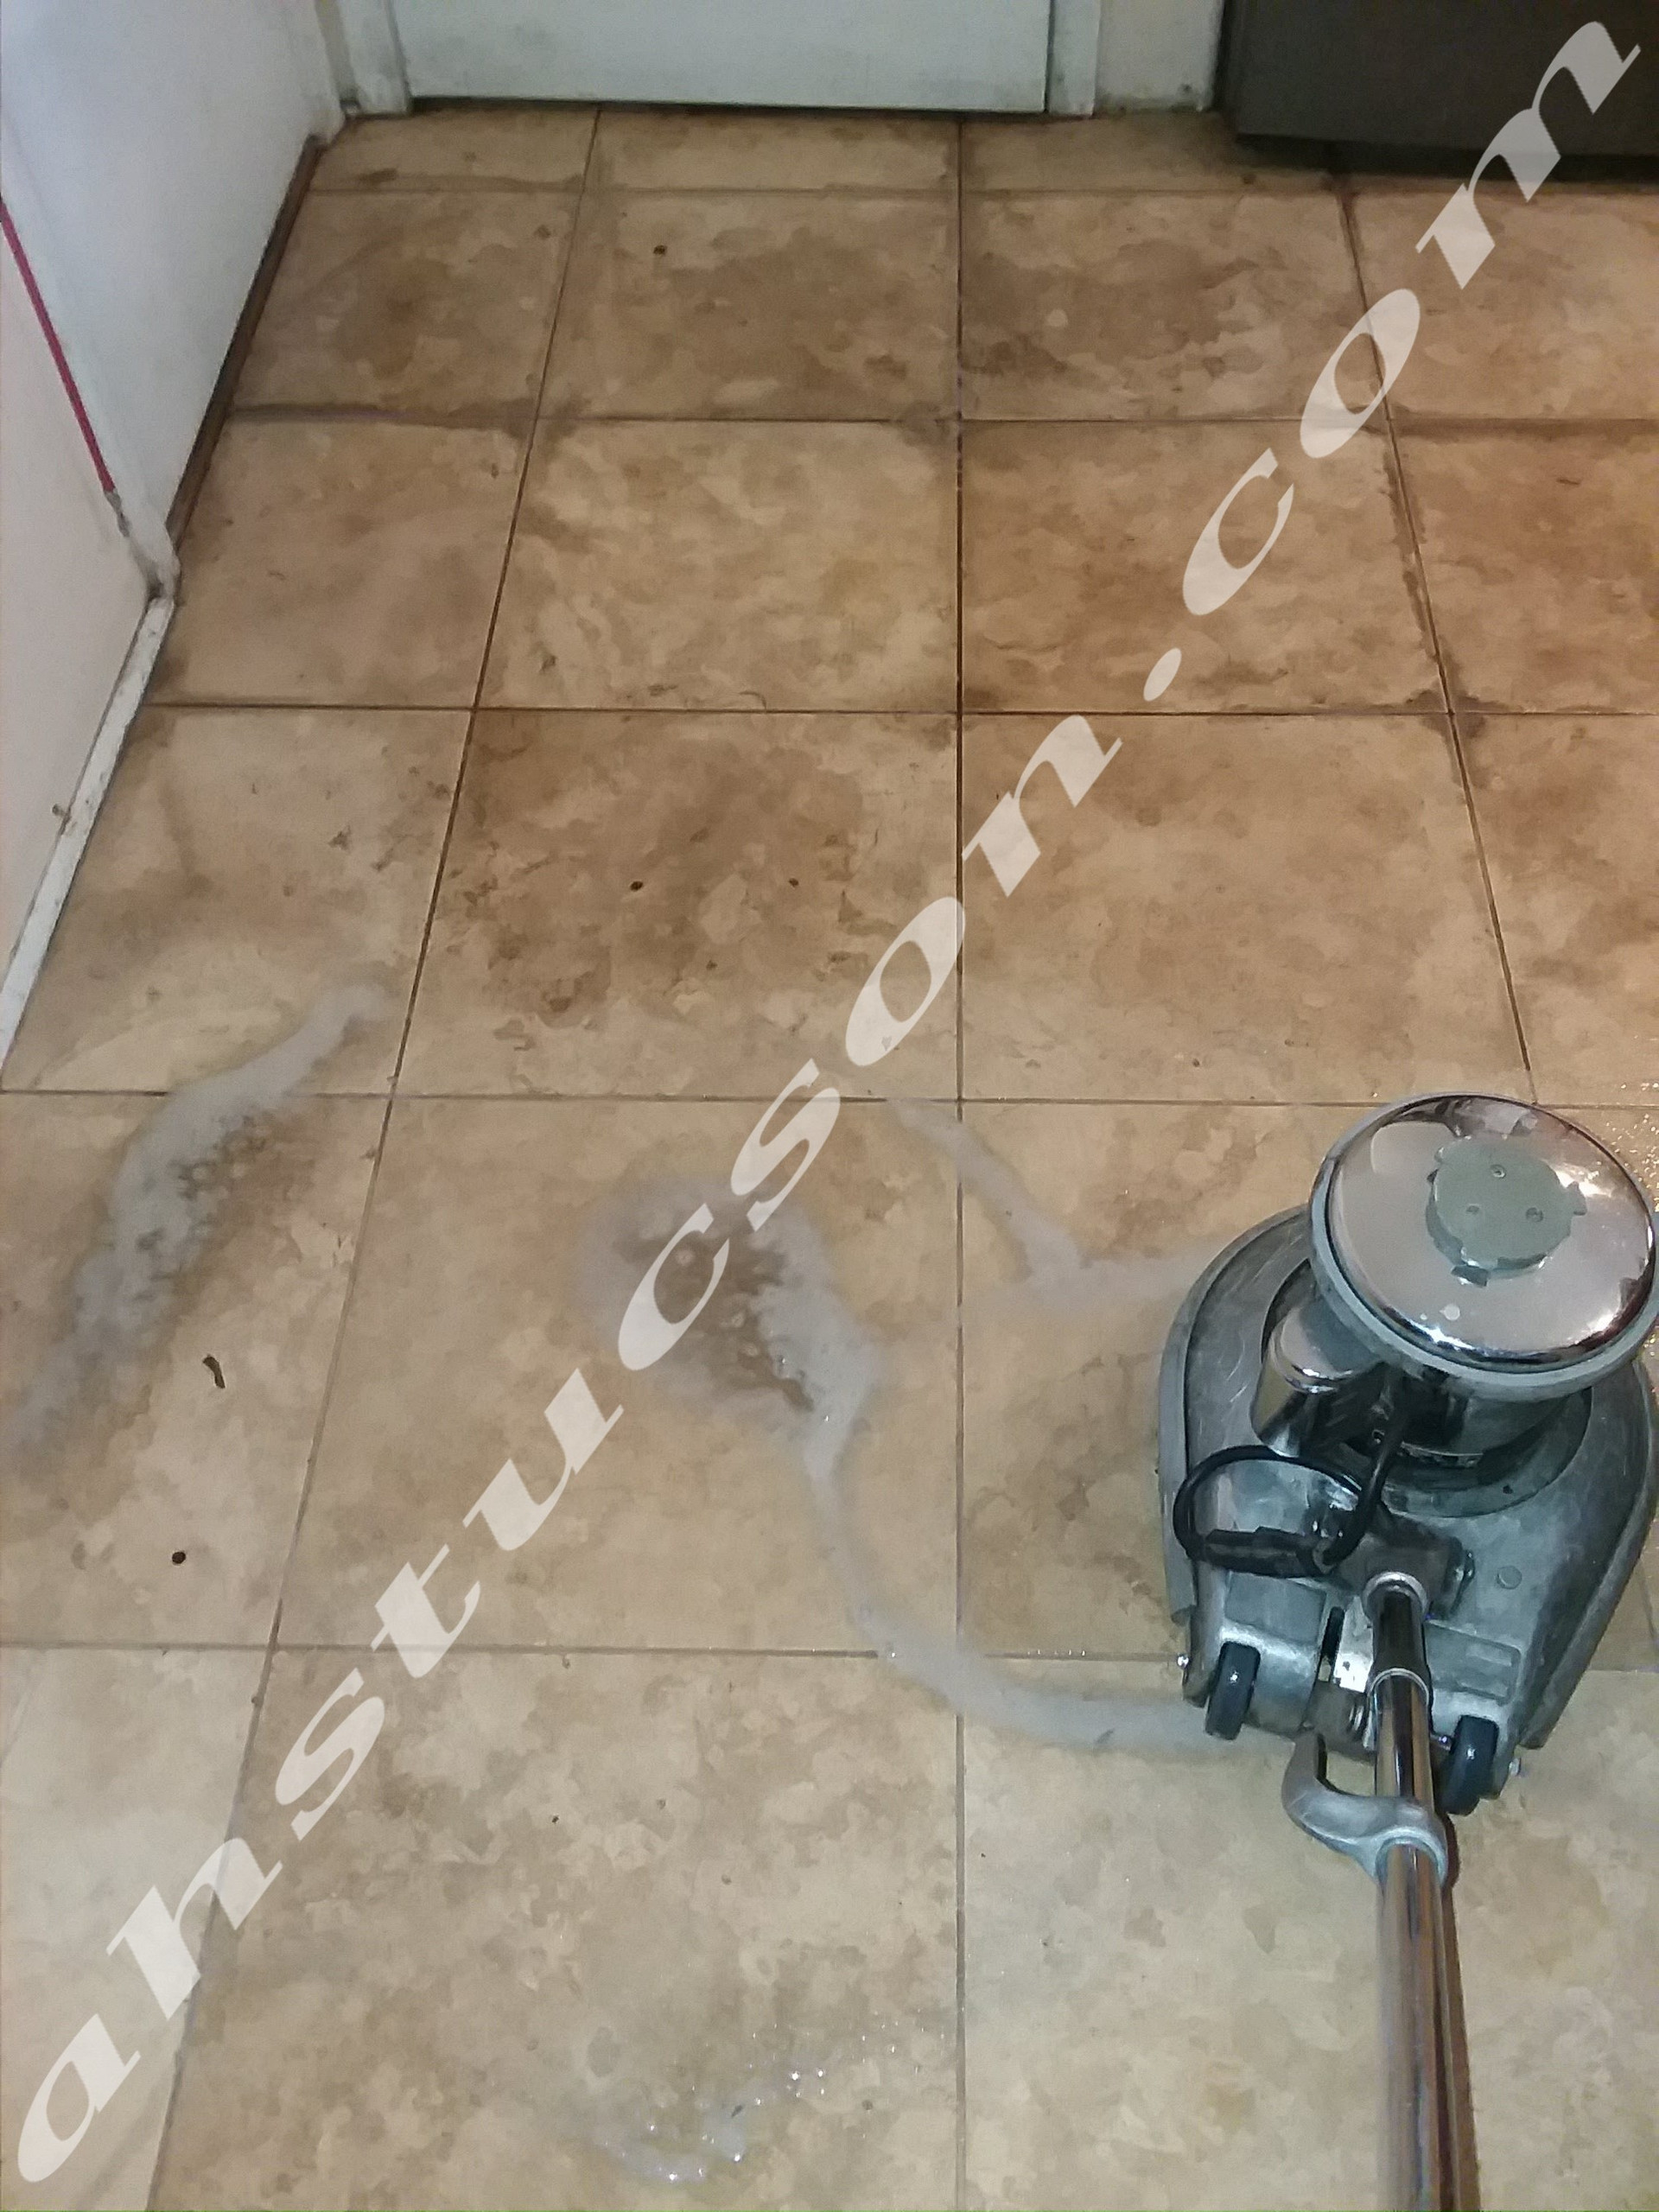 TILE-AND-GROUT-CLEANING-20180402_130459.